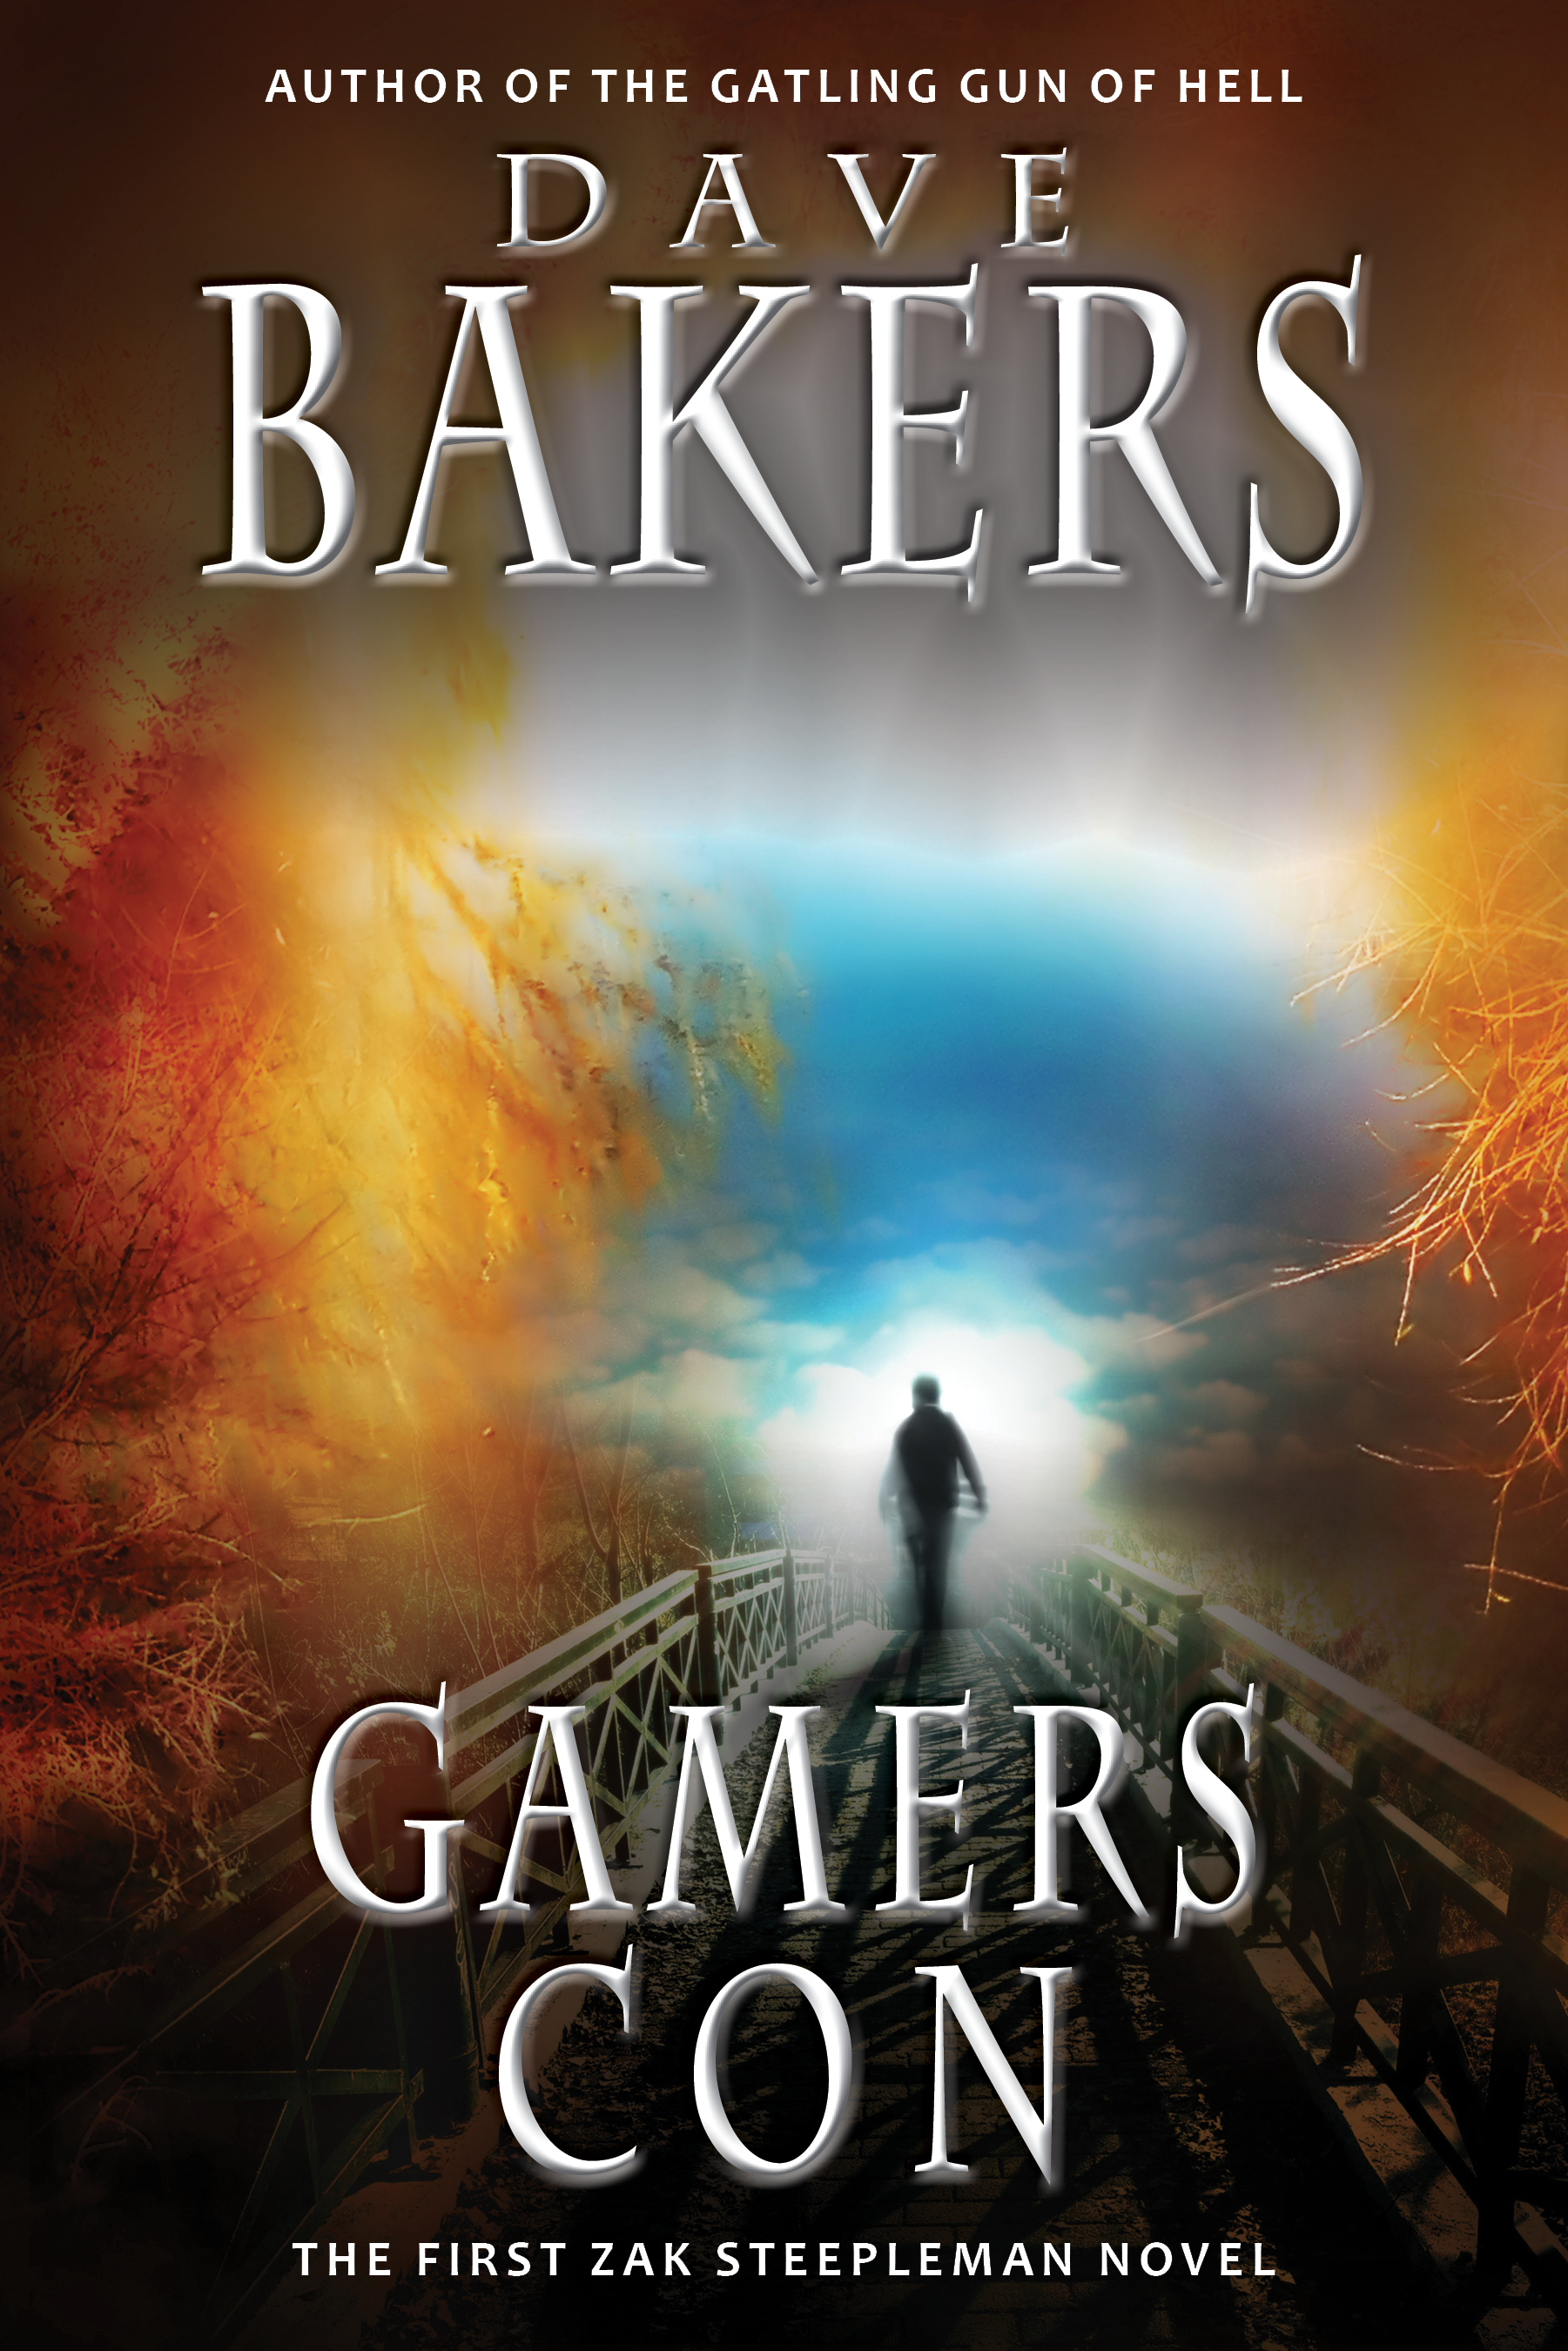 Gamers Con: The First Zak Steepleman Novel, By Dave Bakers, Free